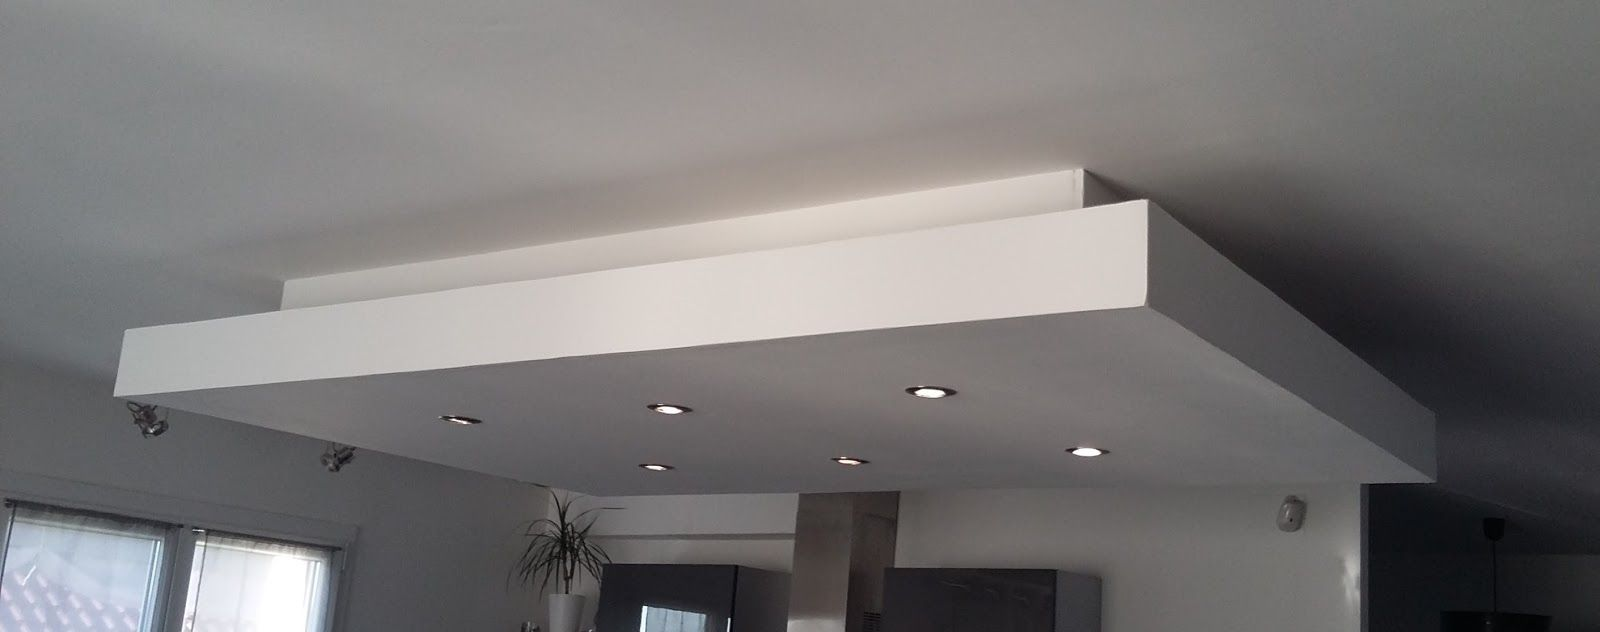 D Roch Plafond Descendu Suspendu Ilot Central Decaissement Design